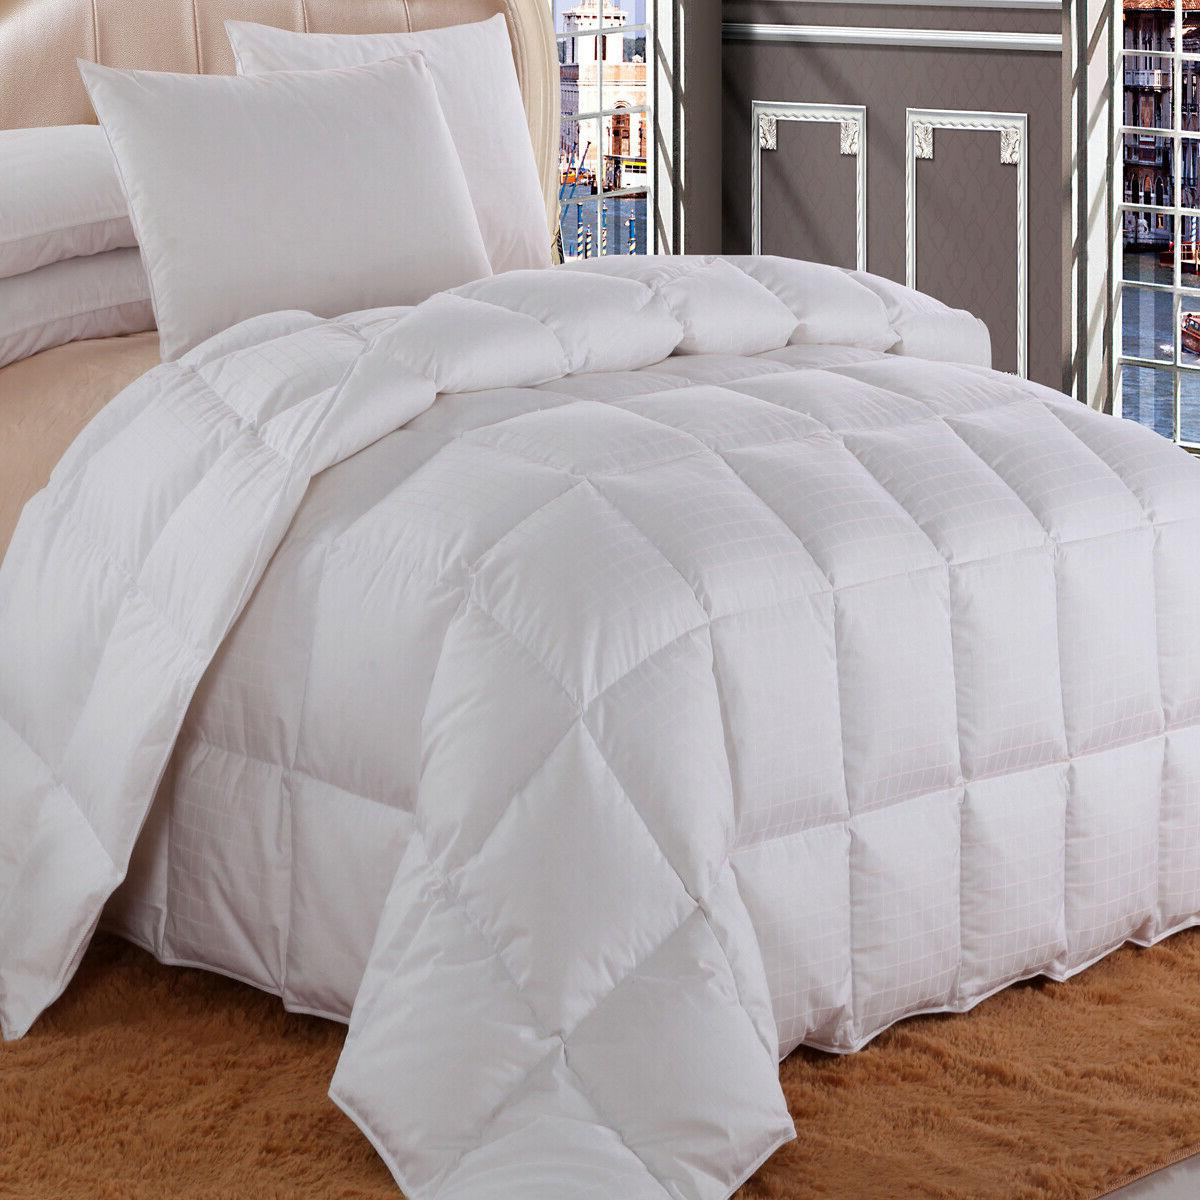 Dobby Checkered White Down-Comforter, 100% Cotton Shell All